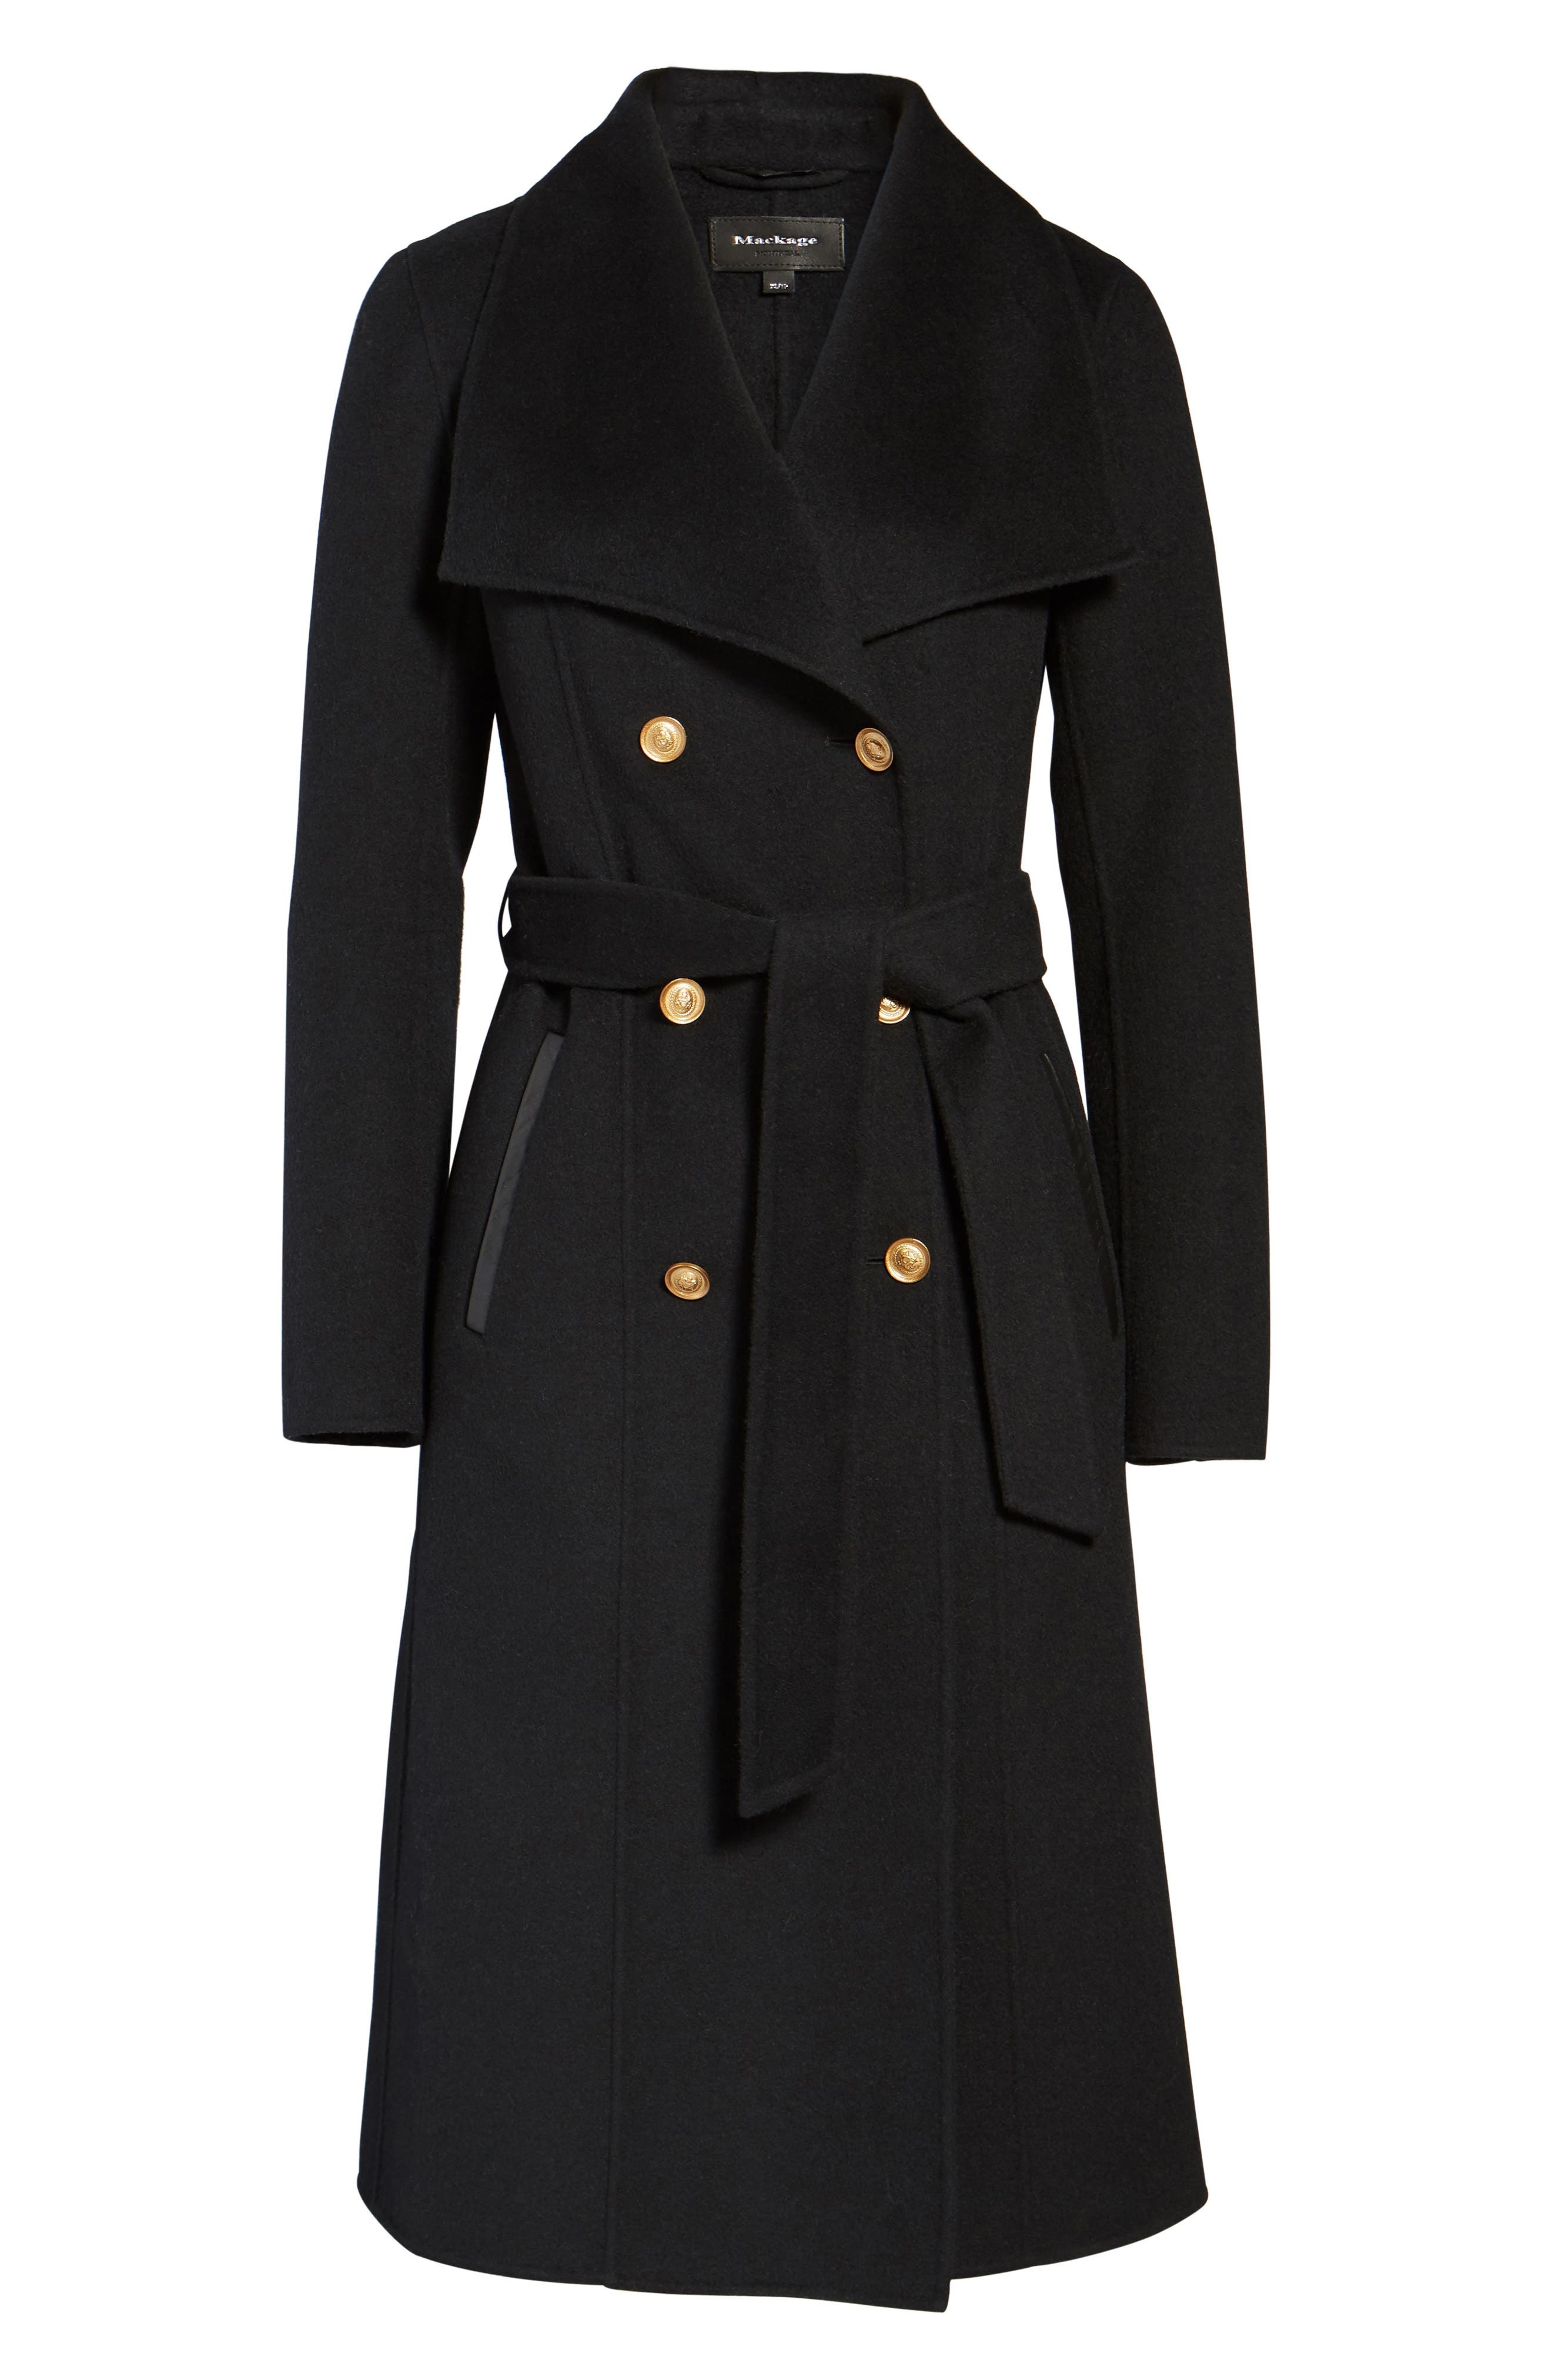 Norah-N Double Breasted Wool Blend Long Military Coat,                             Alternate thumbnail 5, color,                             001